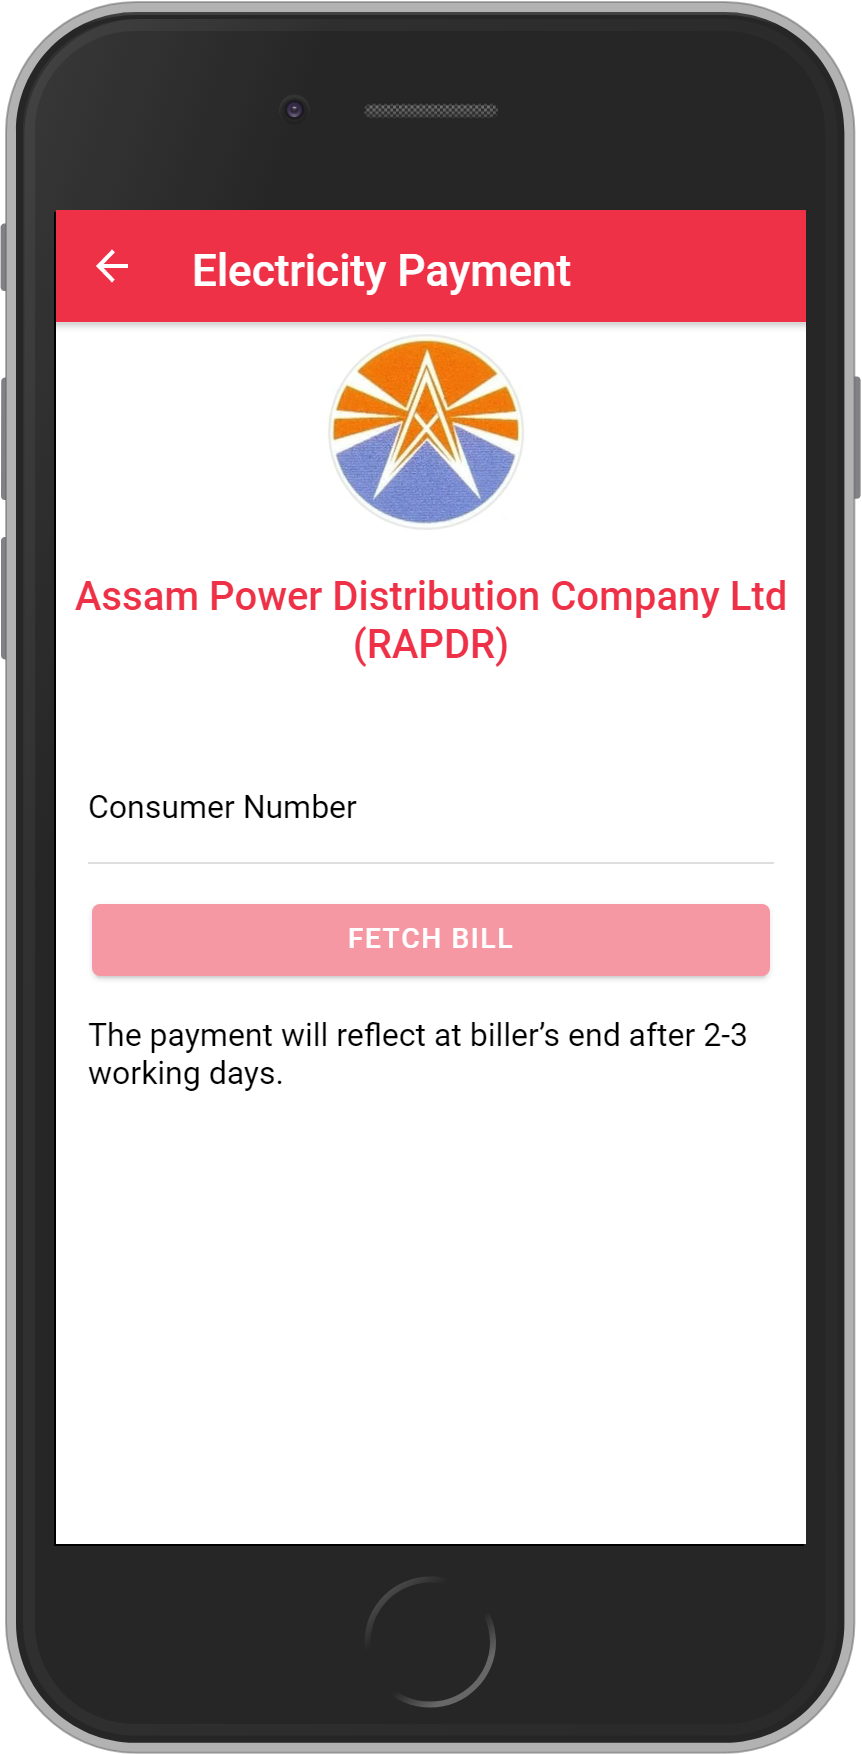 Get UNLIMITED <b>0.1%</b> CASHBACK on Assam Power Distribution Company Ltd (RAPDR) Bill Payment.